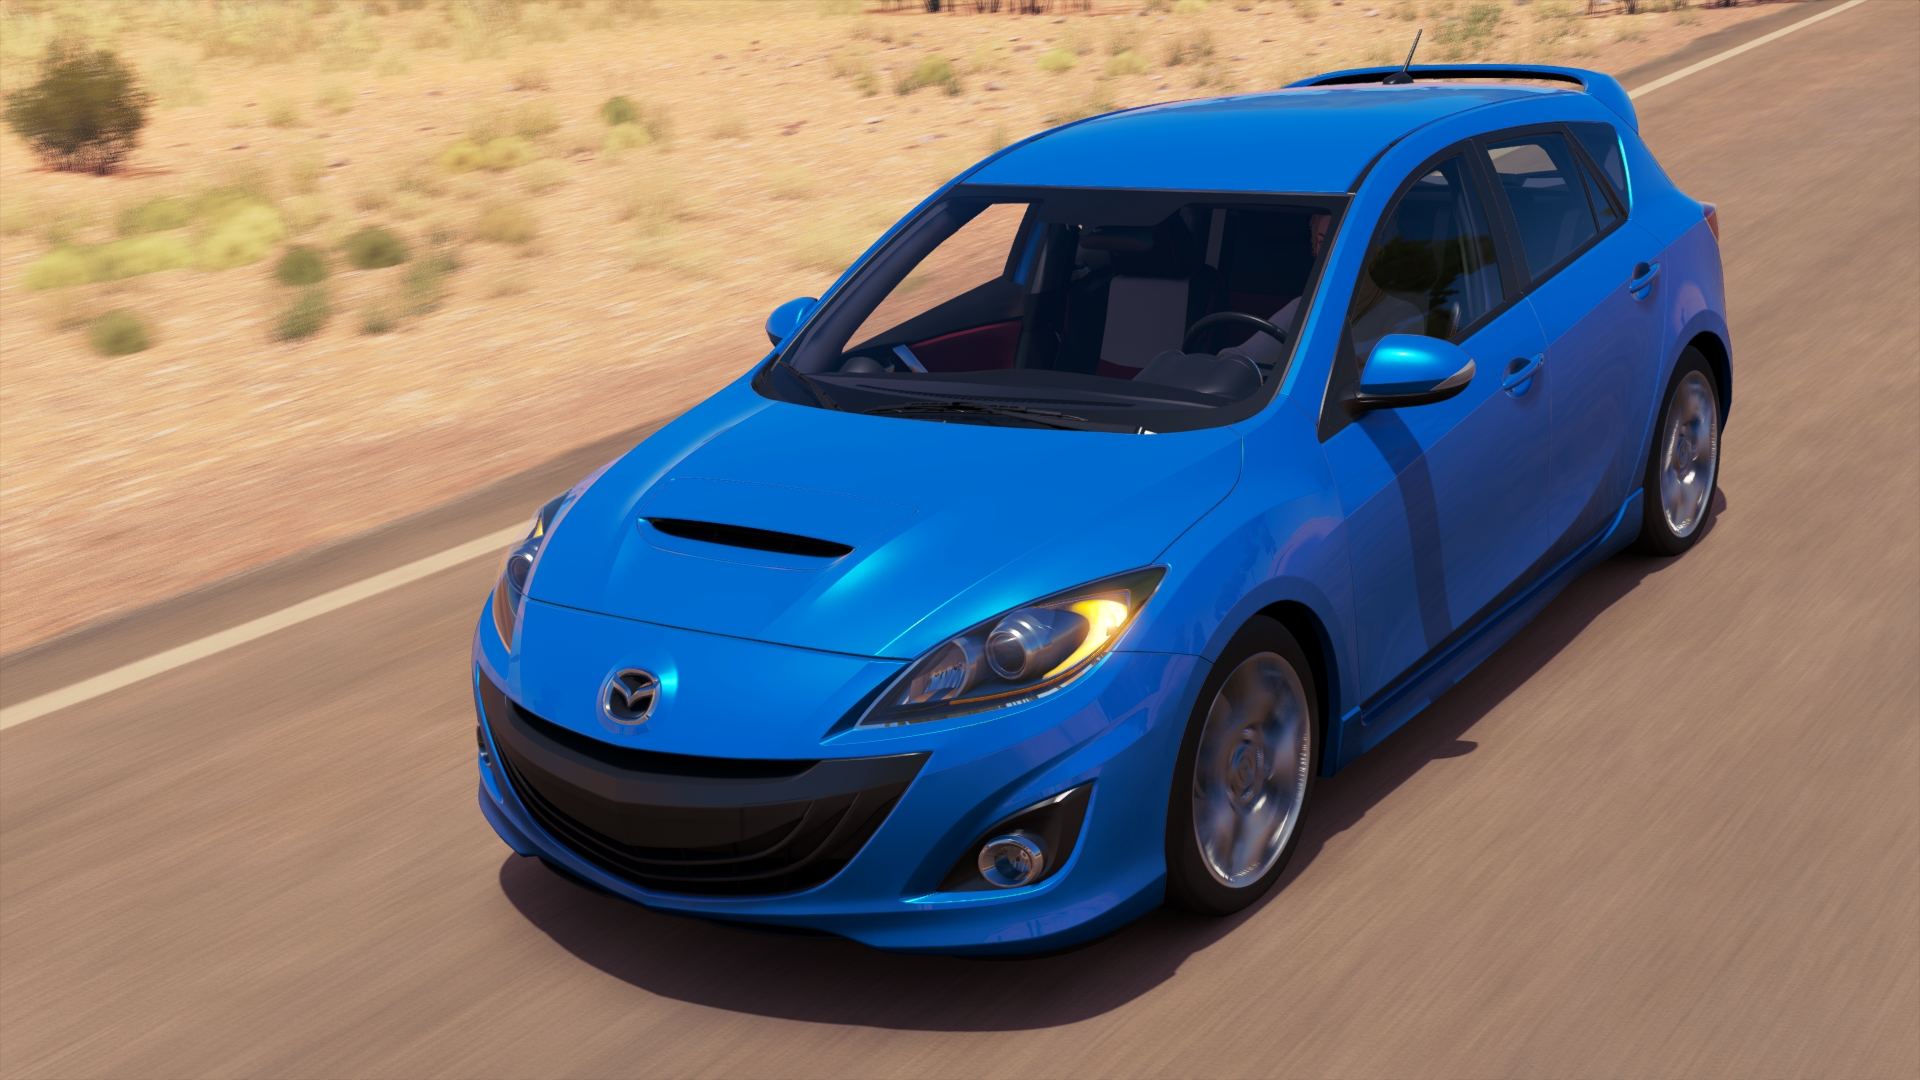 Mazda Speed 3 >> Mazda Mazdaspeed 3 2010 Forza Motorsport Wiki Fandom Powered